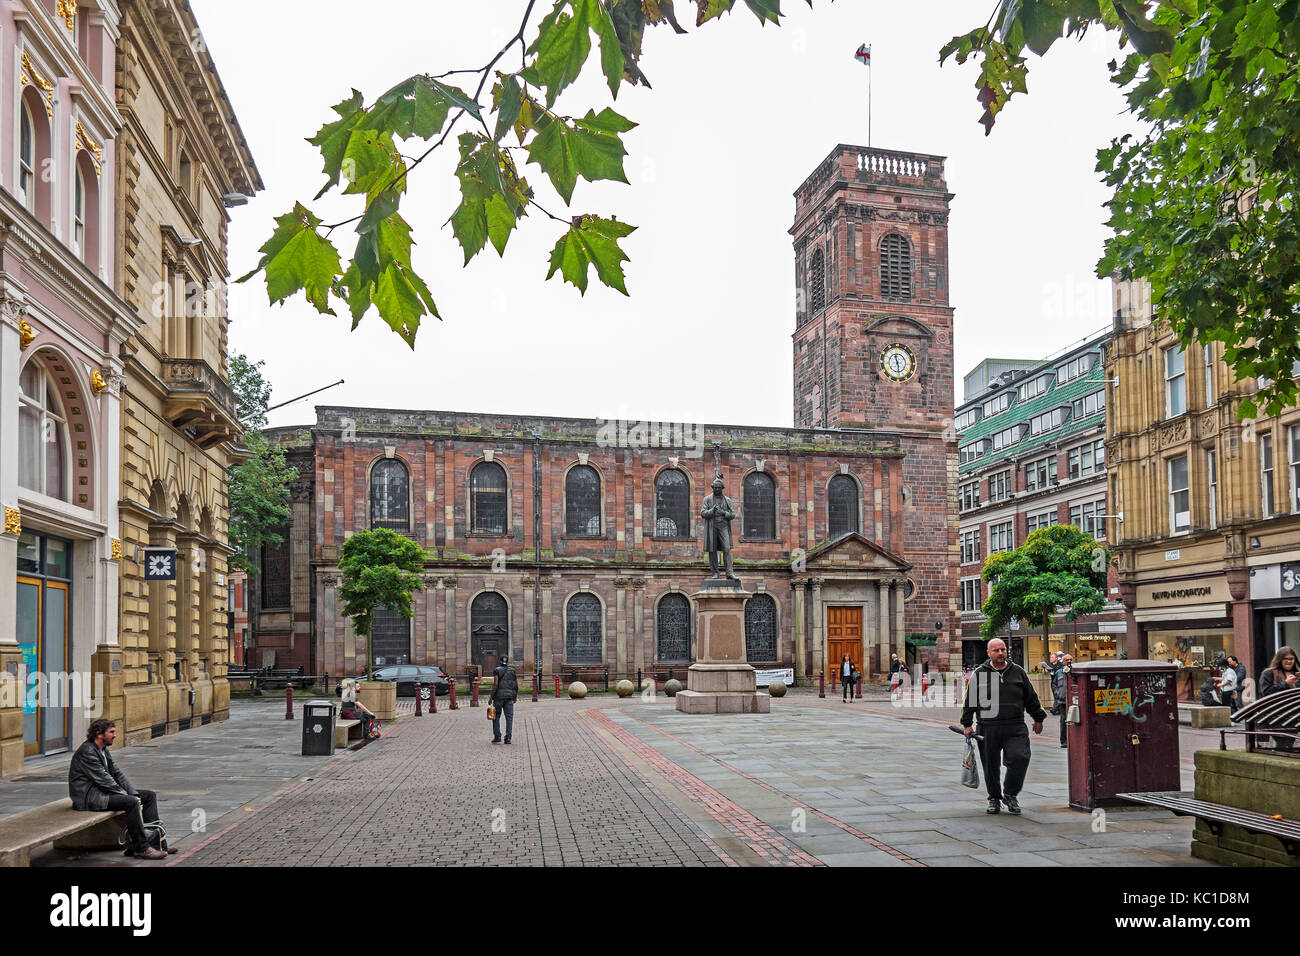 st.anns square in the city of manchester, england, britain, uk. - Stock Image